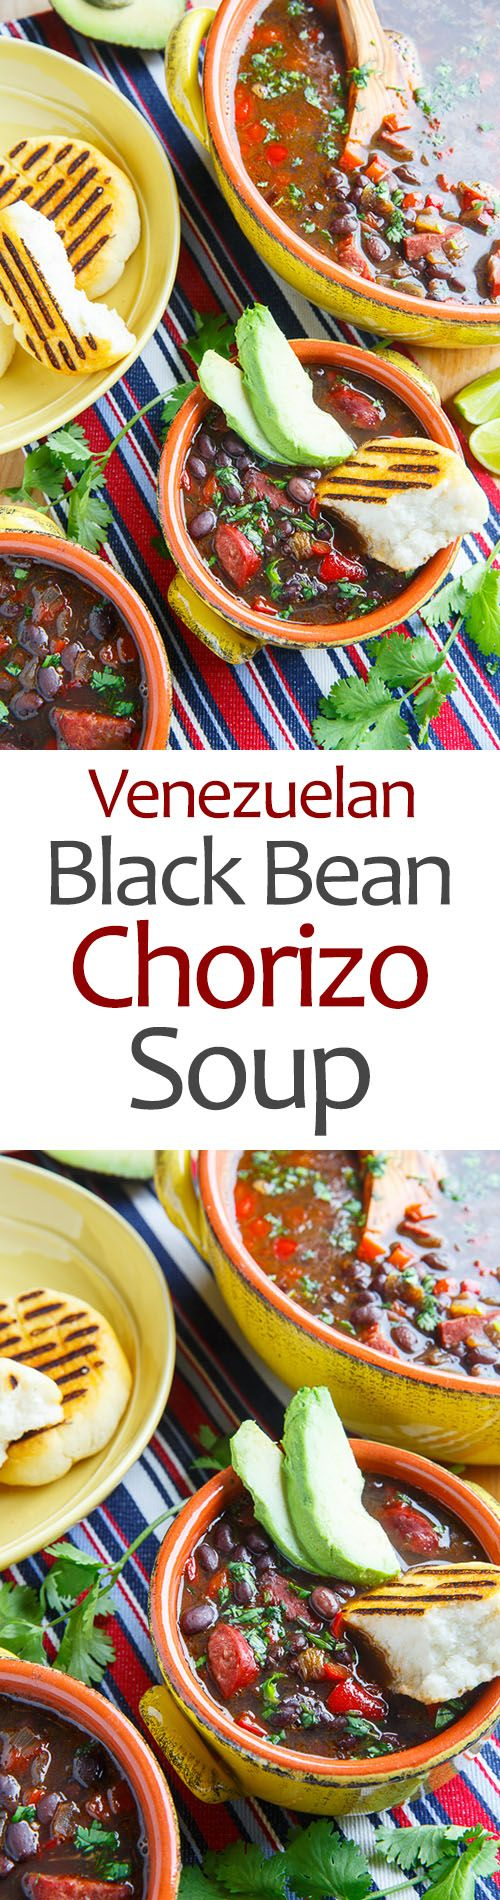 Venezuelan Black Bean and Chorizo Soup | Closet cooking